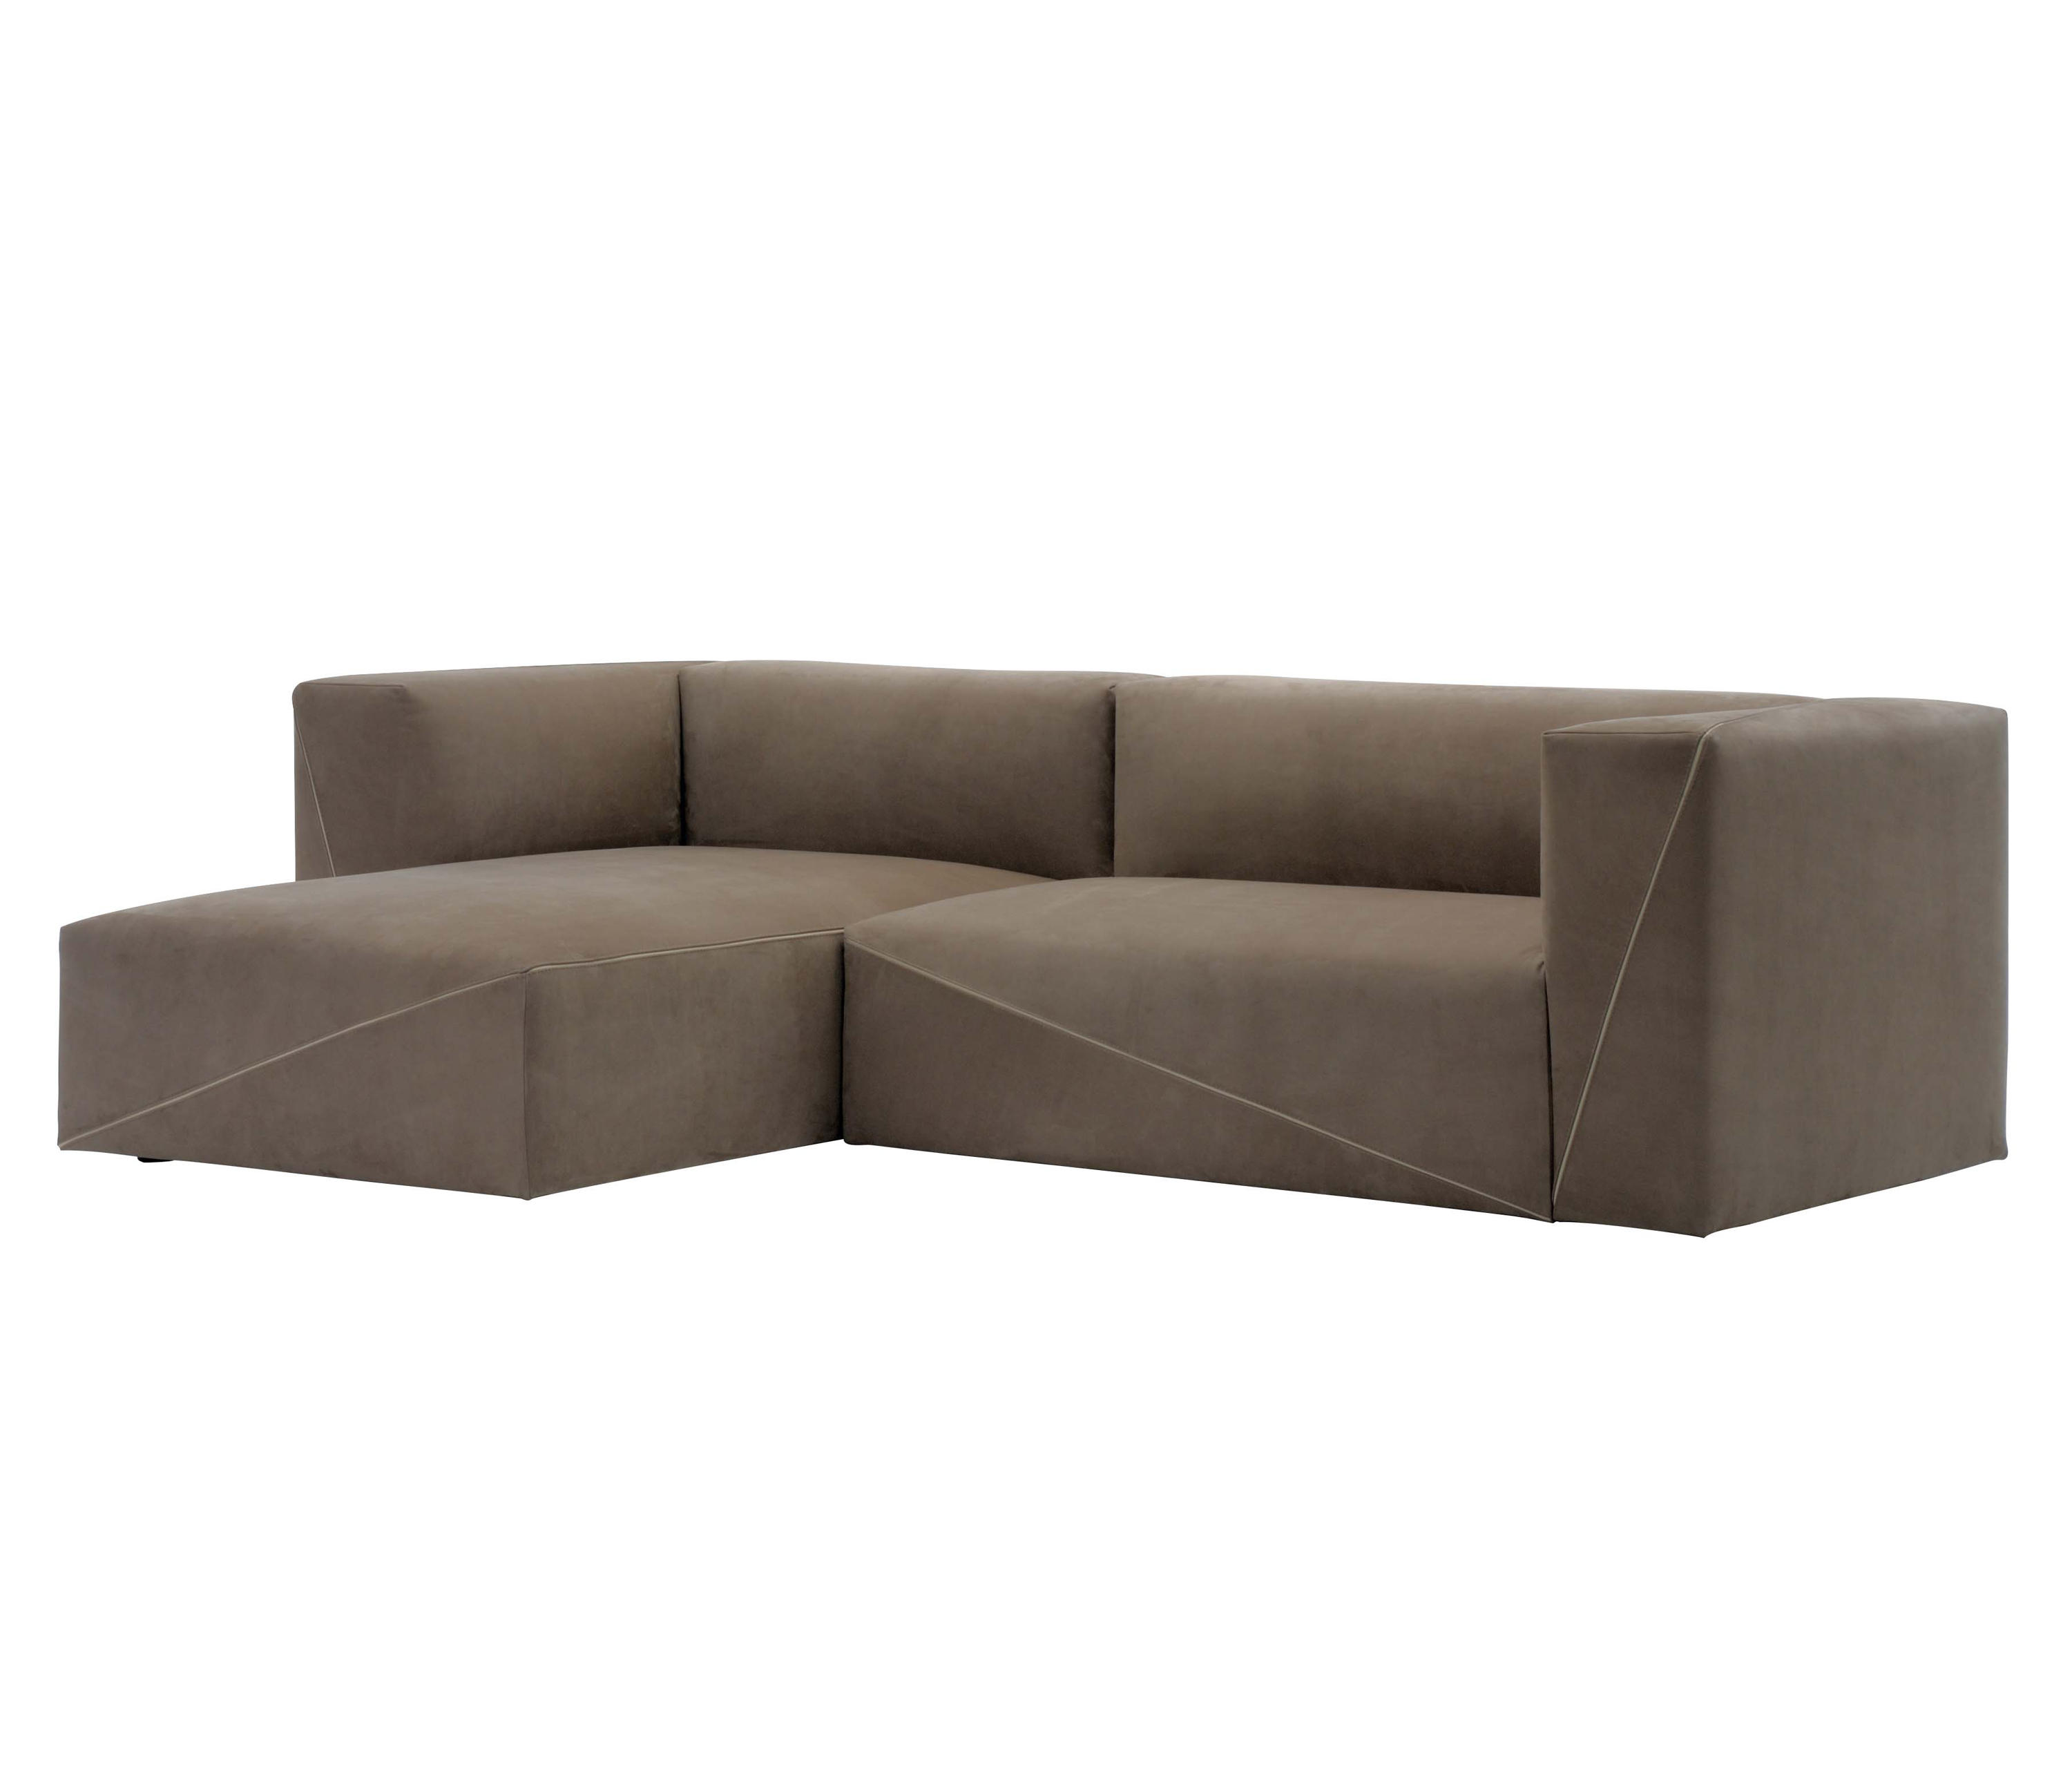 Diagonal chaise longue sectional sofa modular sofa for Casa chaise longue